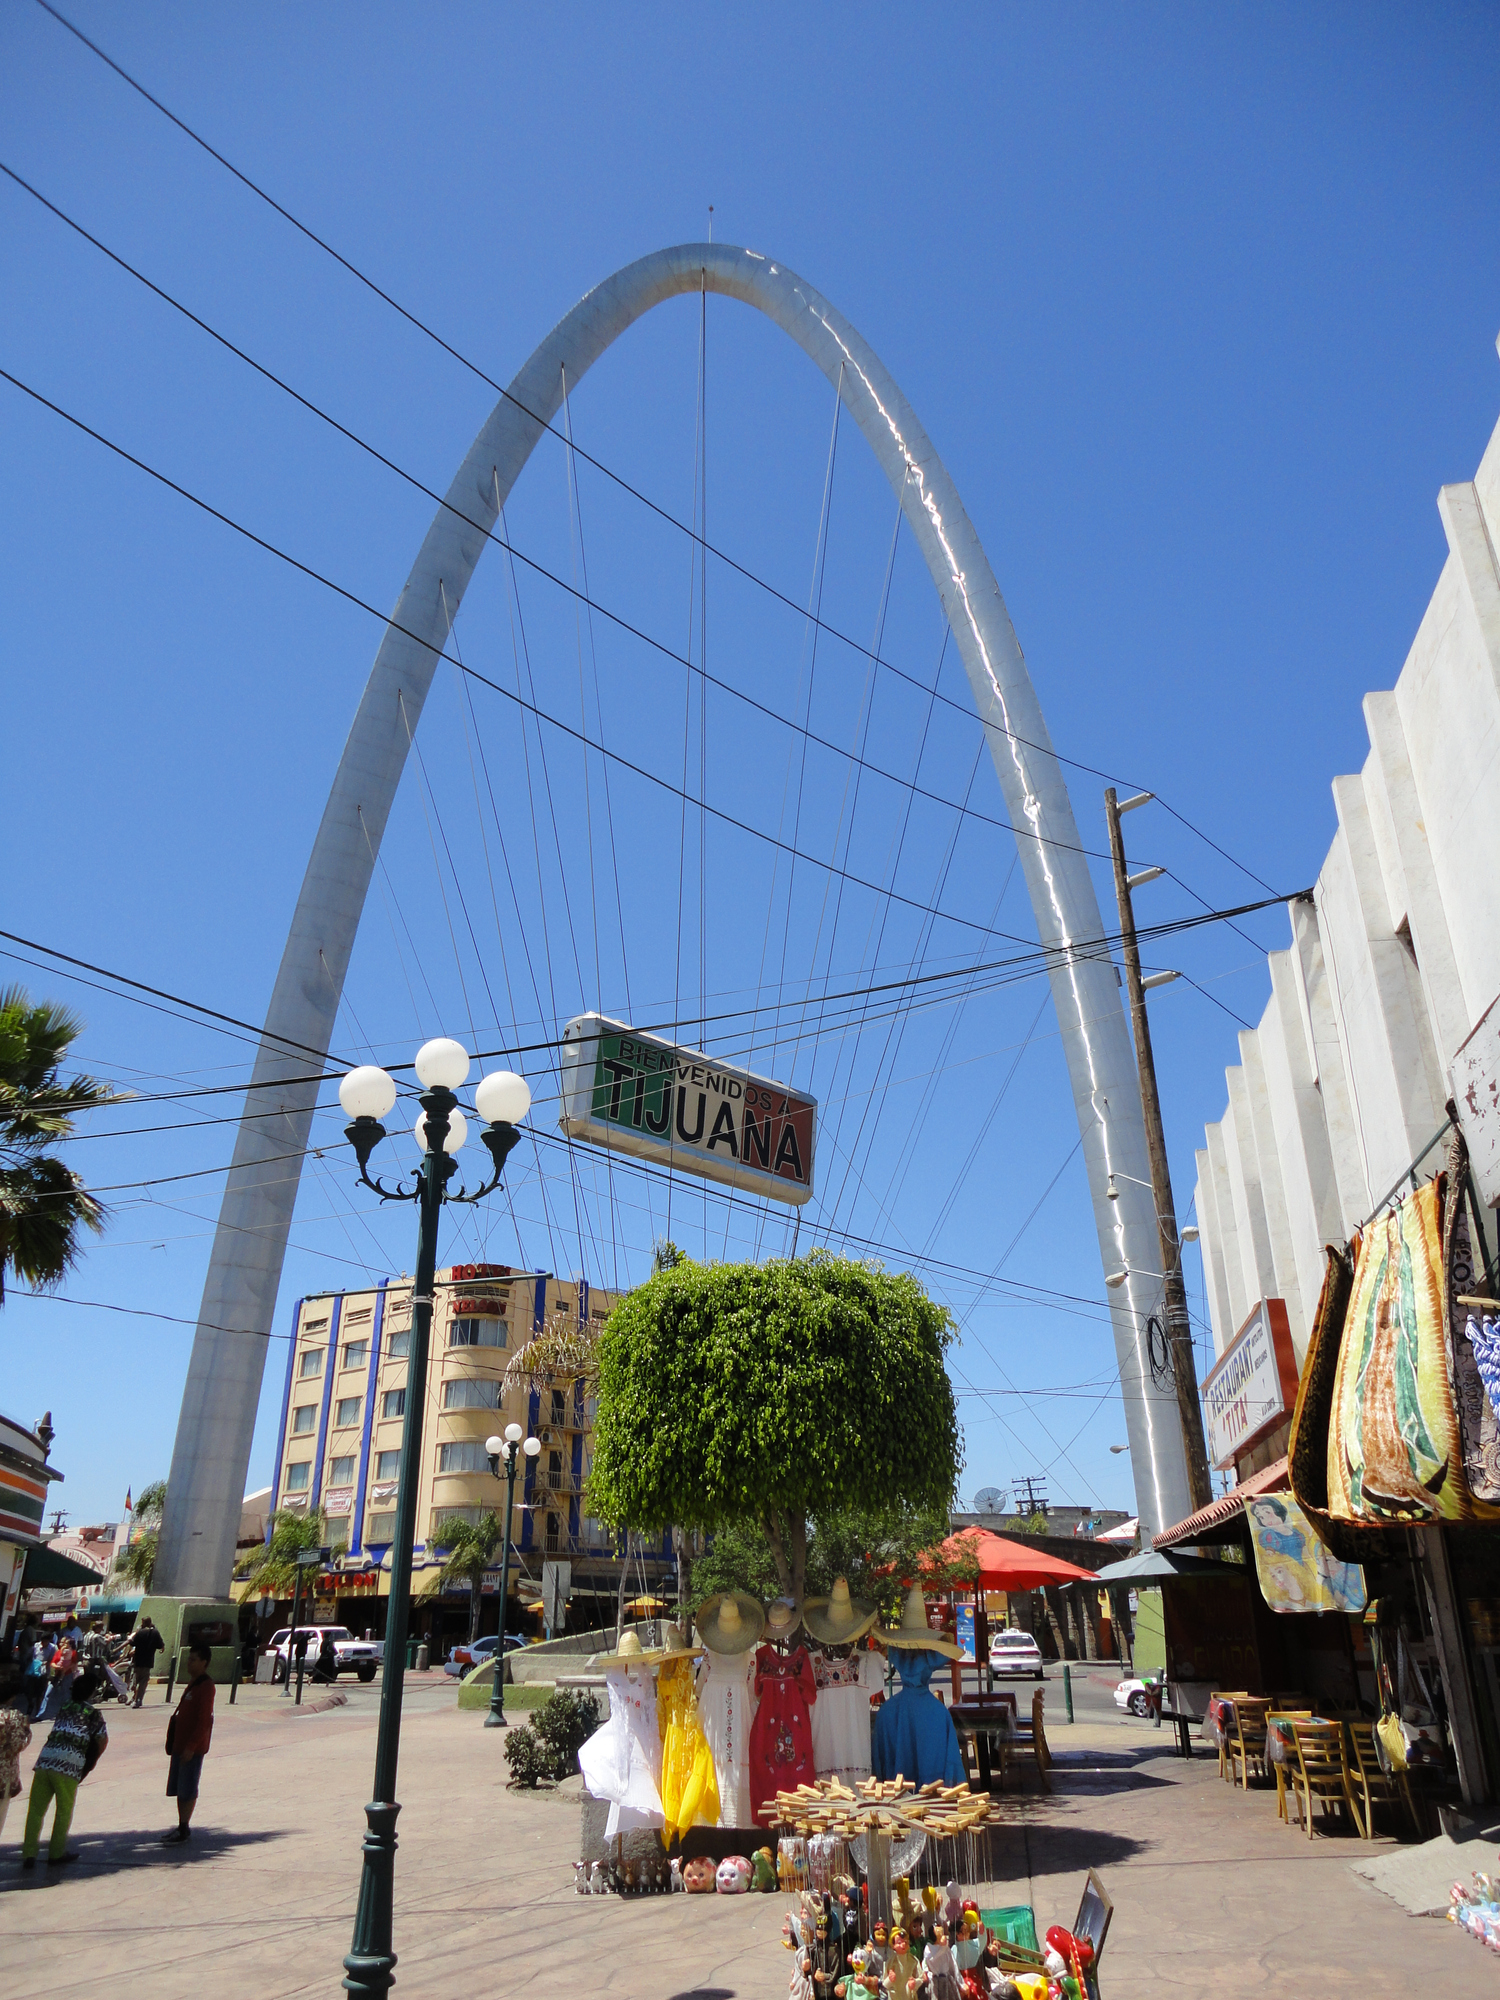 An close up view on the Tijuana Arch located in the city of Tijuana, Baja California, Mexico.